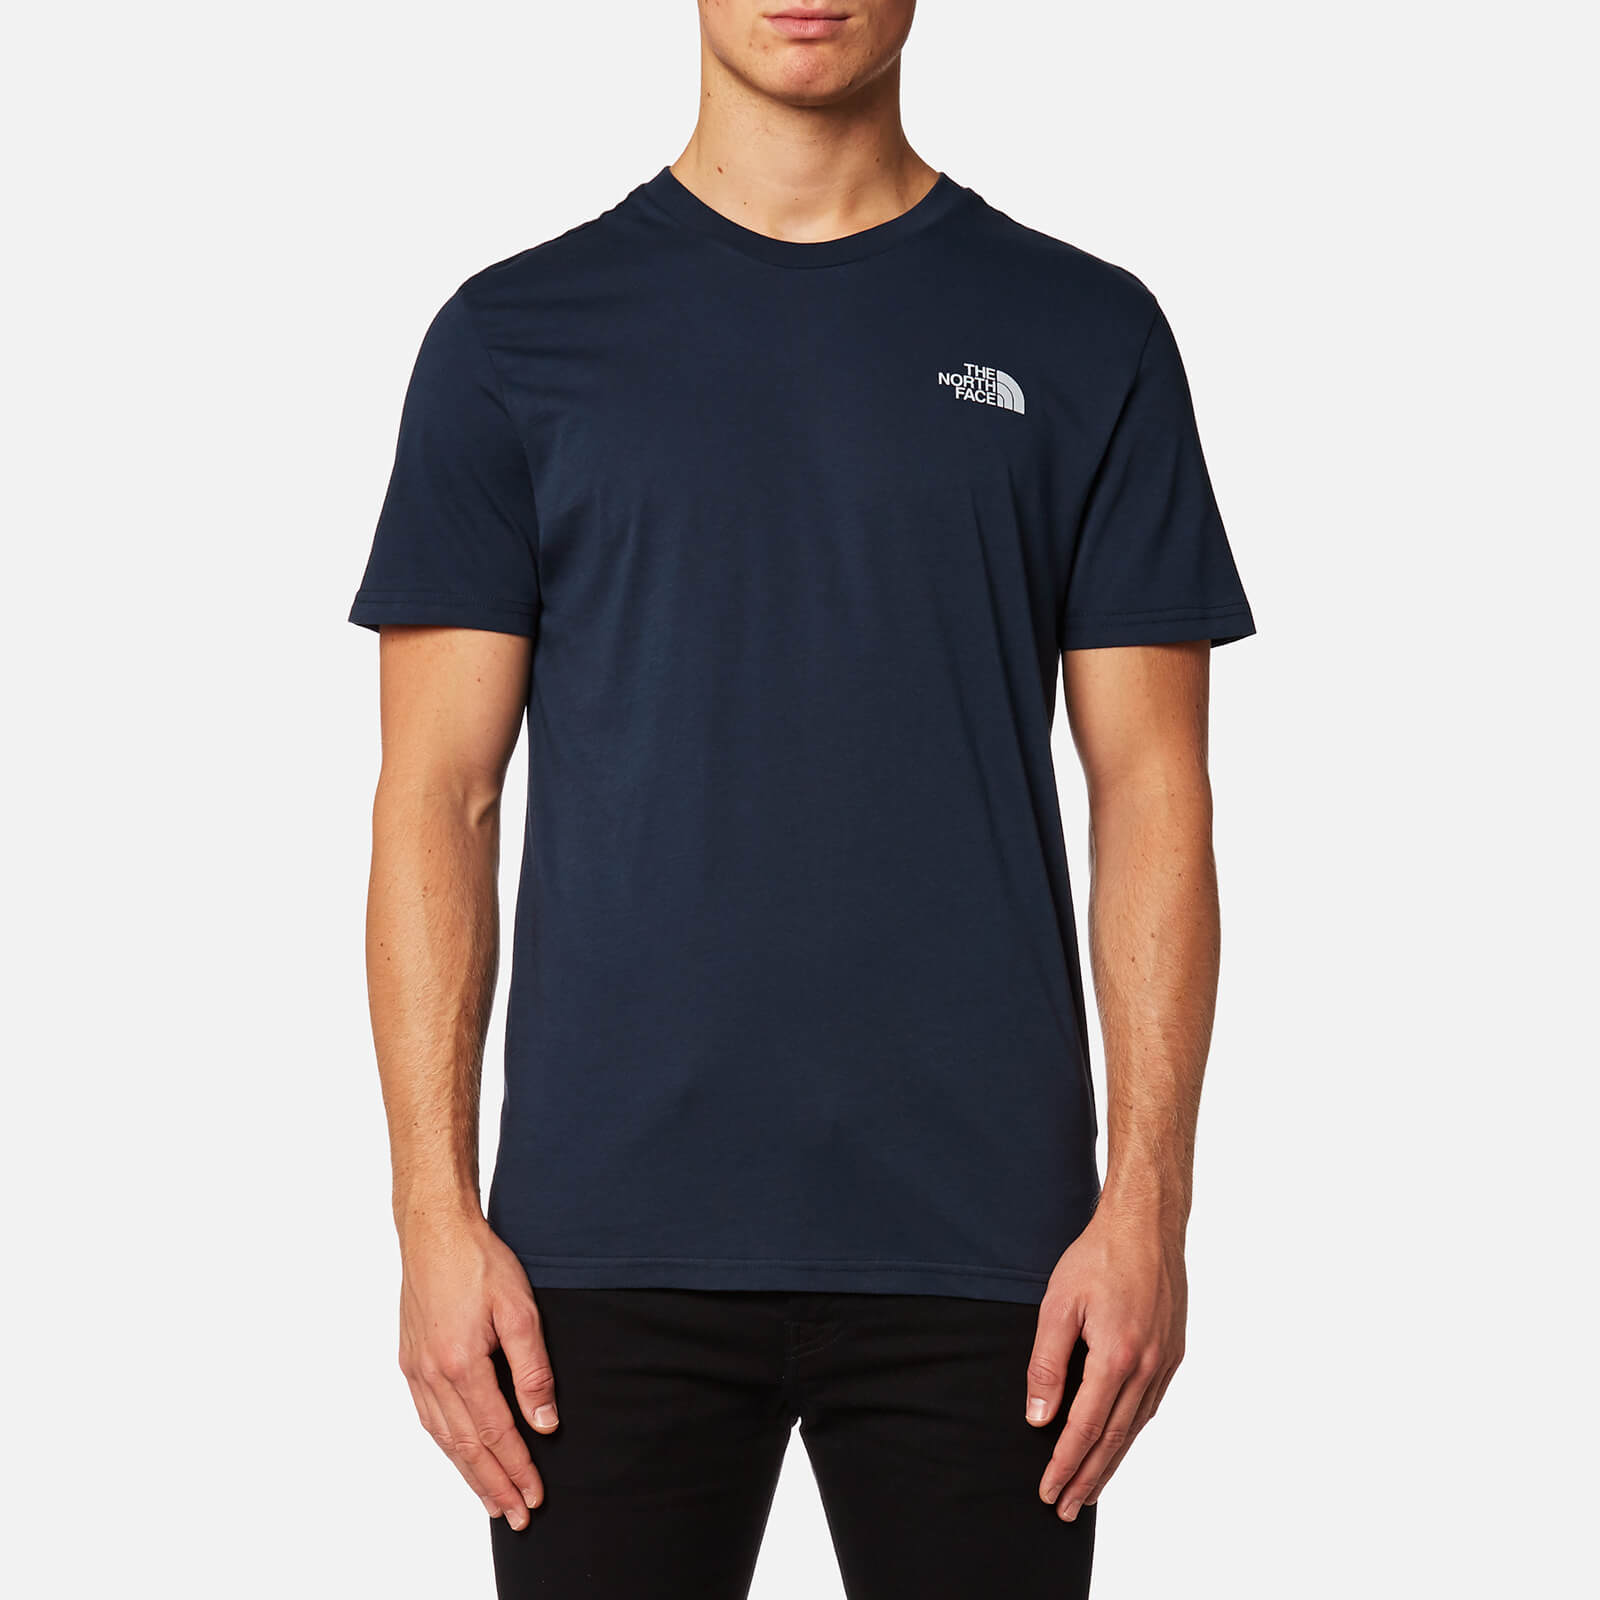 262cb1282 The North Face Men's Short Sleeve Simple Dome T-Shirt - Urban Navy/High  Rise Grey